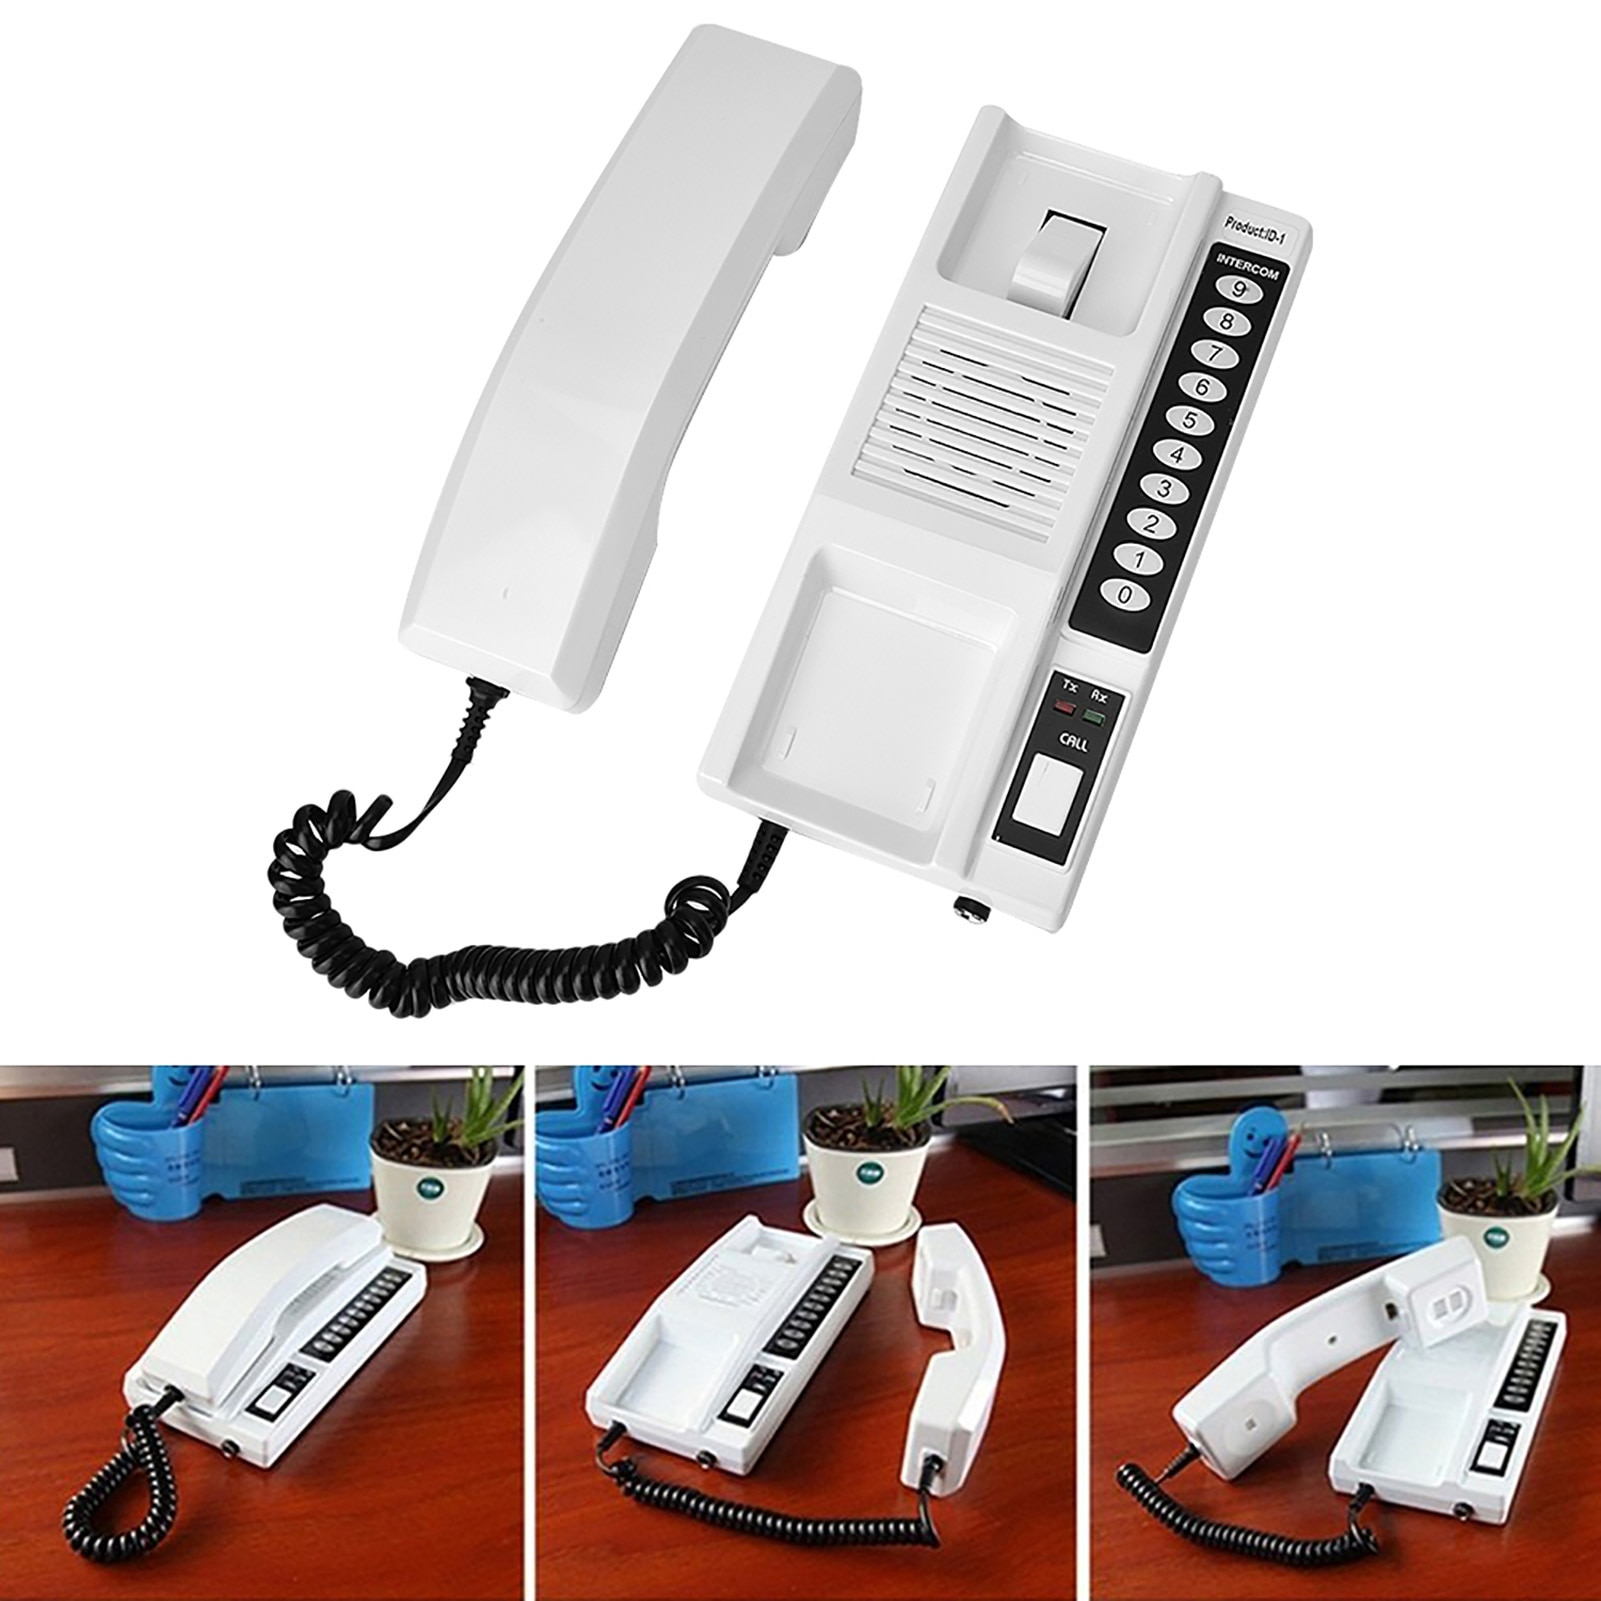 1 piece Walkie Talk Telephone Intercom 433Mhz Wireless Intercom System Secure Handsets Extendable for Warehouse Office enlarge